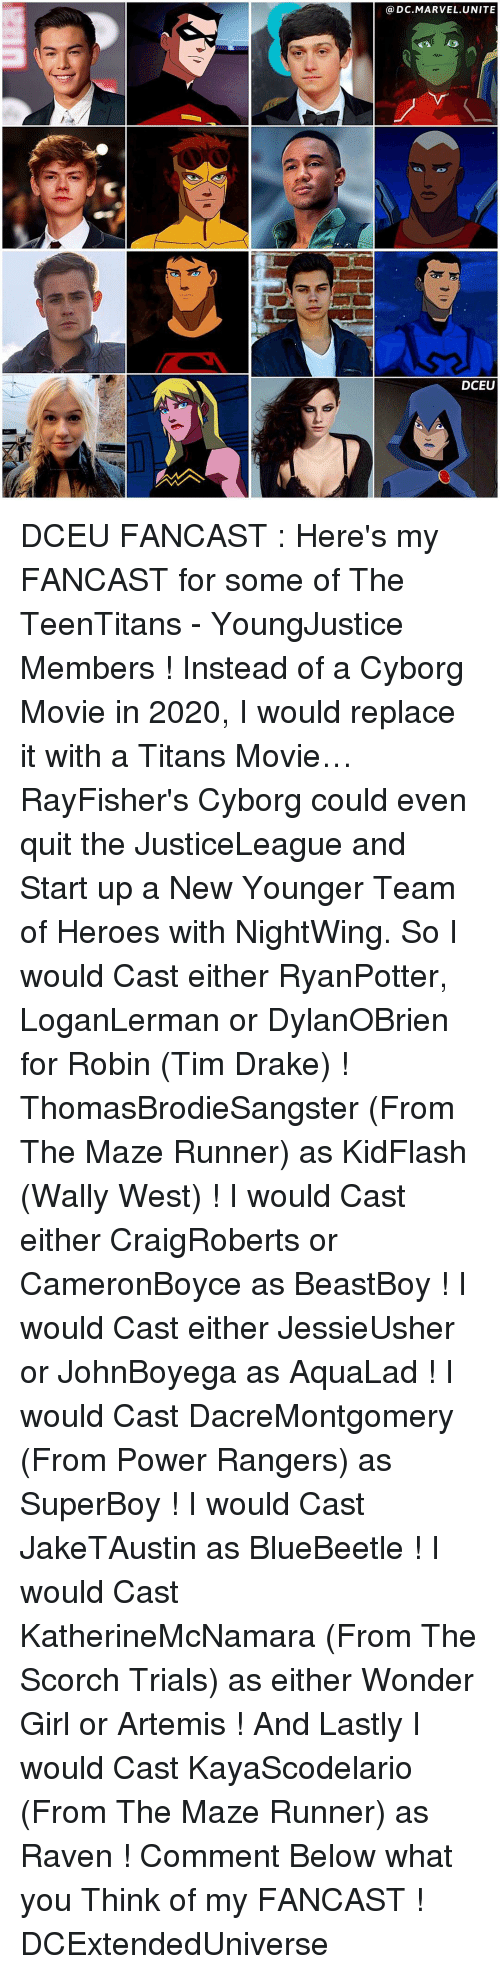 Drake, Memes, and Power Rangers: DC MARVEL UNITE  DCEU DCEU FANCAST : Here's my FANCAST for some of The TeenTitans - YoungJustice Members ! Instead of a Cyborg Movie in 2020, I would replace it with a Titans Movie… RayFisher's Cyborg could even quit the JusticeLeague and Start up a New Younger Team of Heroes with NightWing. So I would Cast either RyanPotter, LoganLerman or DylanOBrien for Robin (Tim Drake) ! ThomasBrodieSangster (From The Maze Runner) as KidFlash (Wally West) ! I would Cast either CraigRoberts or CameronBoyce as BeastBoy ! I would Cast either JessieUsher or JohnBoyega as AquaLad ! I would Cast DacreMontgomery (From Power Rangers) as SuperBoy ! I would Cast JakeTAustin as BlueBeetle ! I would Cast KatherineMcNamara (From The Scorch Trials) as either Wonder Girl or Artemis ! And Lastly I would Cast KayaScodelario (From The Maze Runner) as Raven ! Comment Below what you Think of my FANCAST ! DCExtendedUniverse